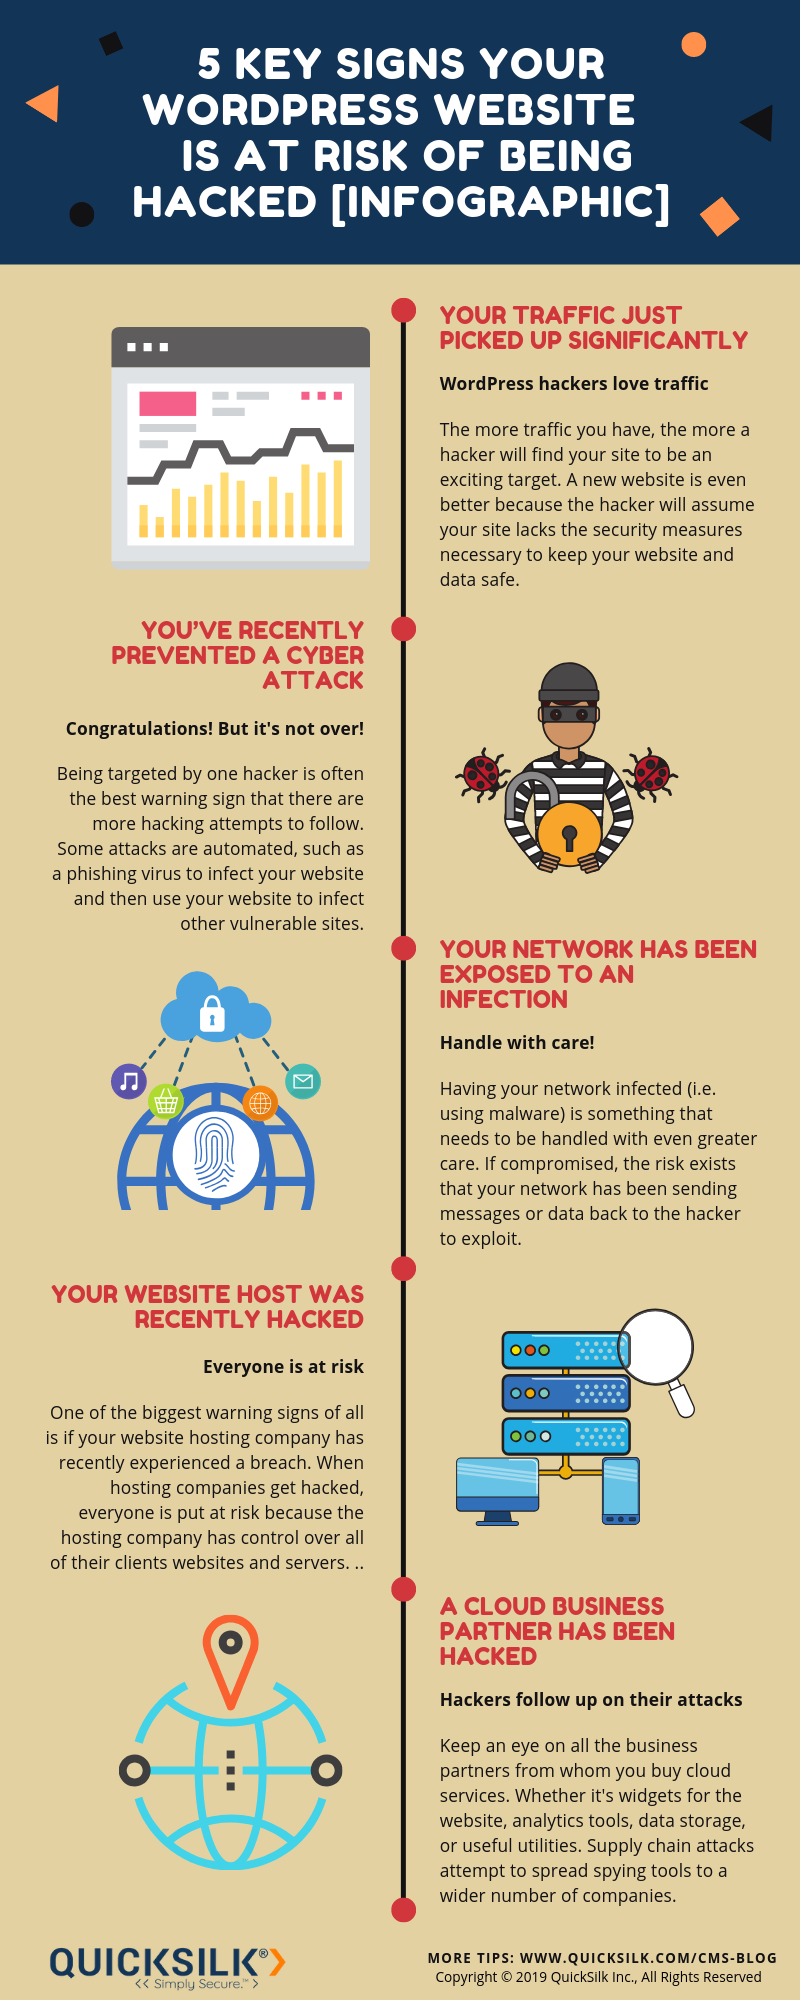 5 Key Signs Your WordPress Website is at Risk of Being Hacked [Infographic]